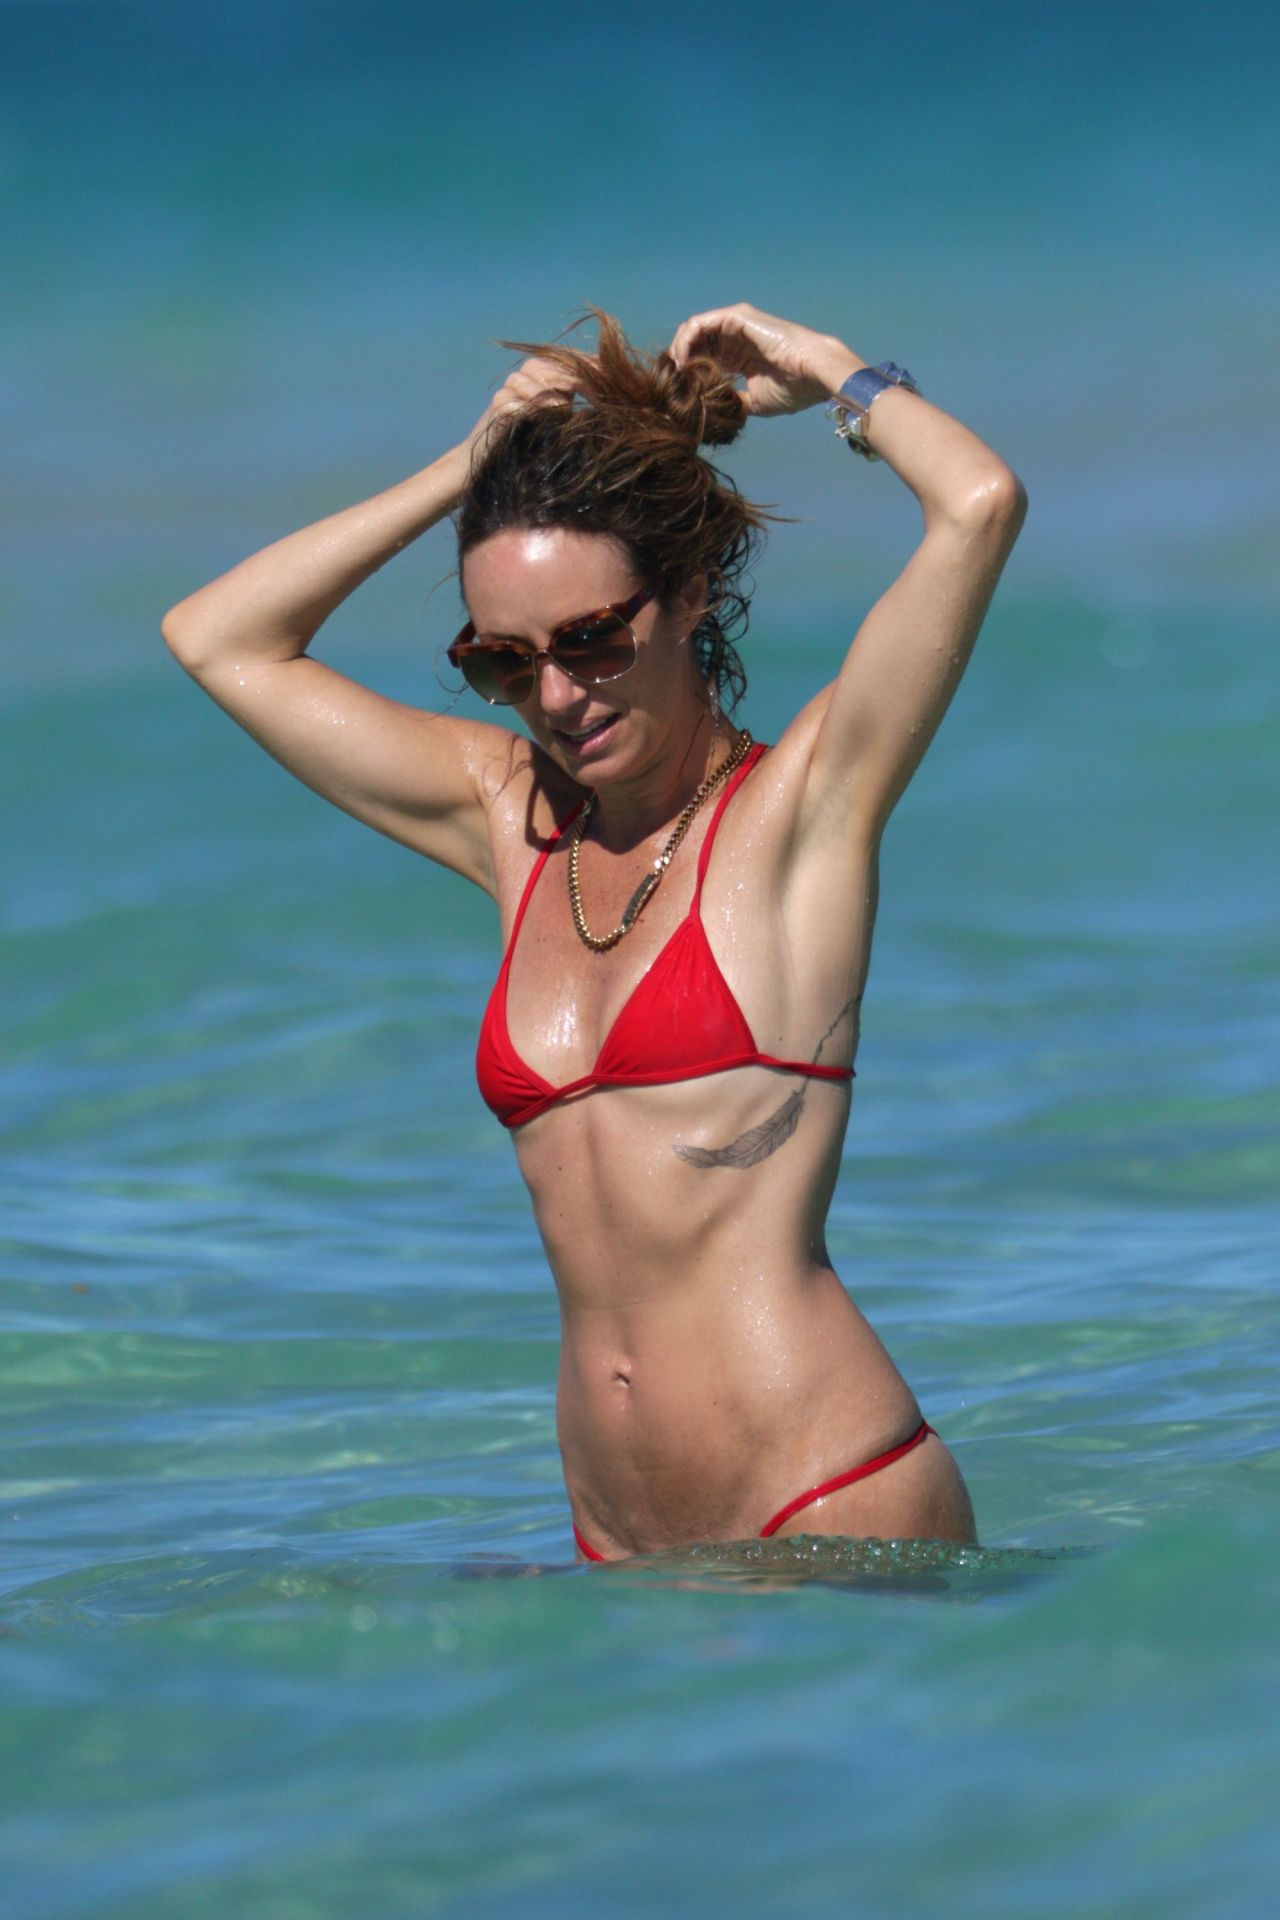 Catt Sadler In Red Bikini At A Beach In Miami - April 2015-1227